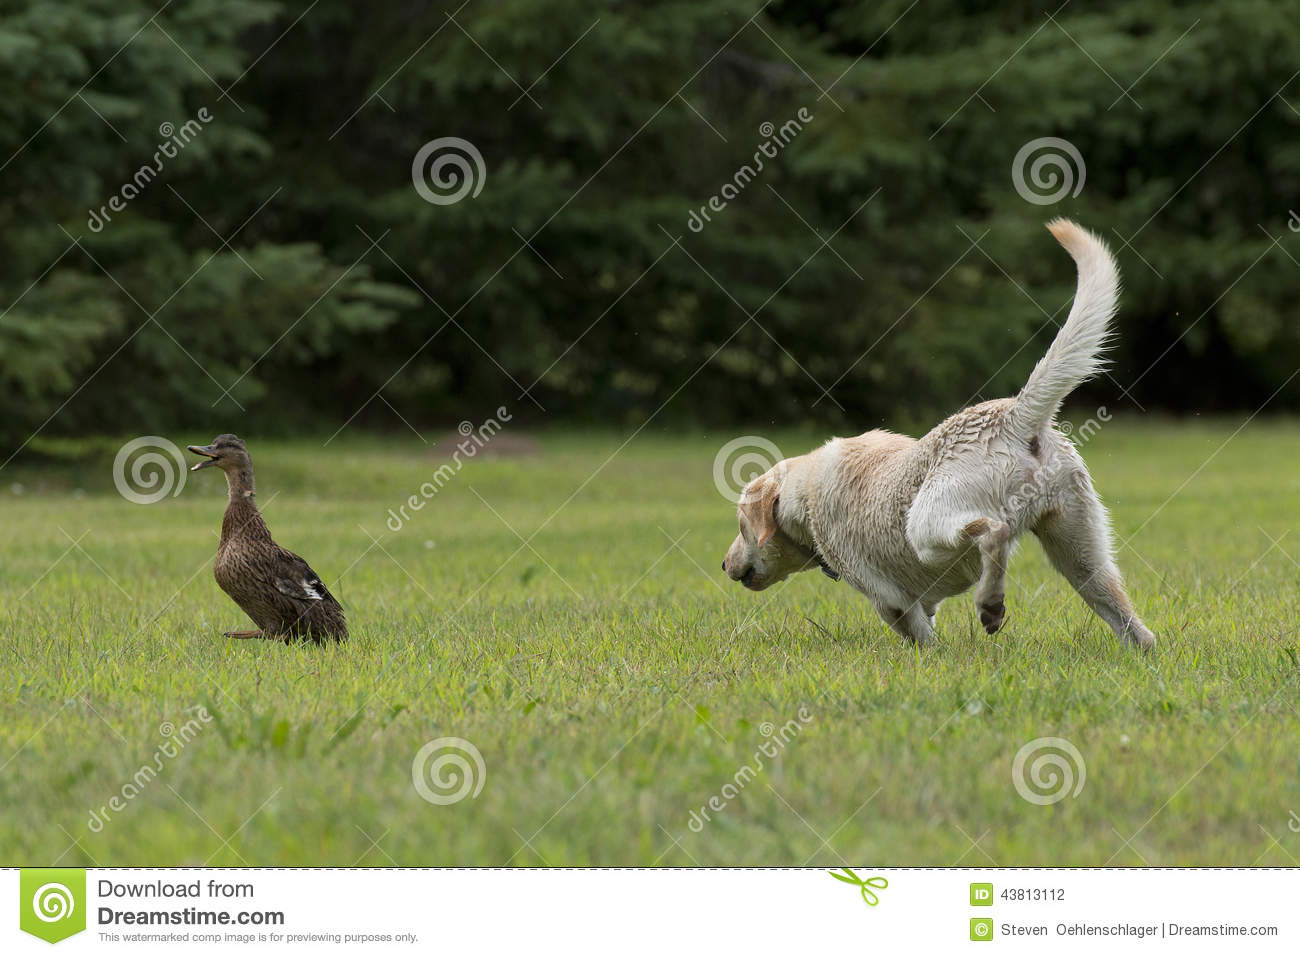 Training Your Dog To Fetch Ducks